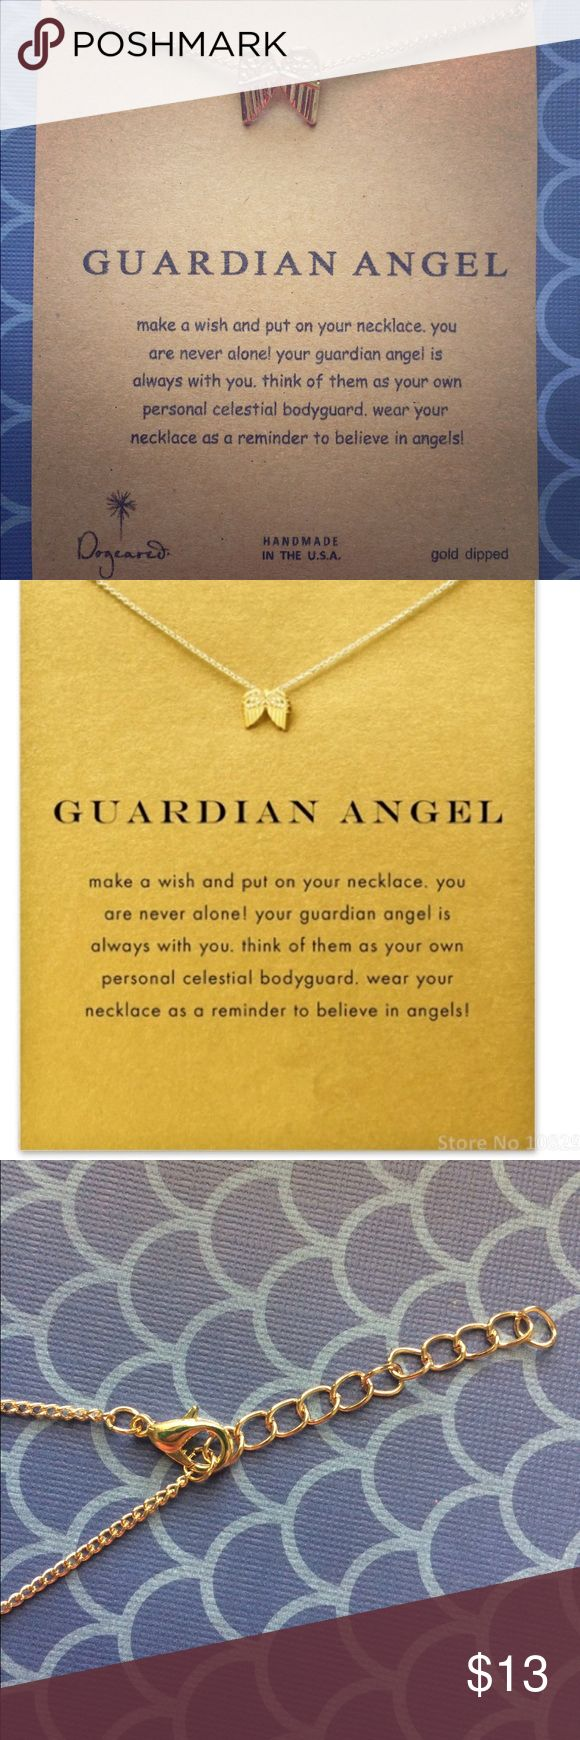 NEW Gold Dipped Guardian Angel Necklace Gorgeous new Gold Dipped, hypoallergenic guardian angel necklace. Wear this necklace as a reminder that your guardian angel is always with you. Adjustable clasp allows for different lengths of wear. Jewelry Necklaces